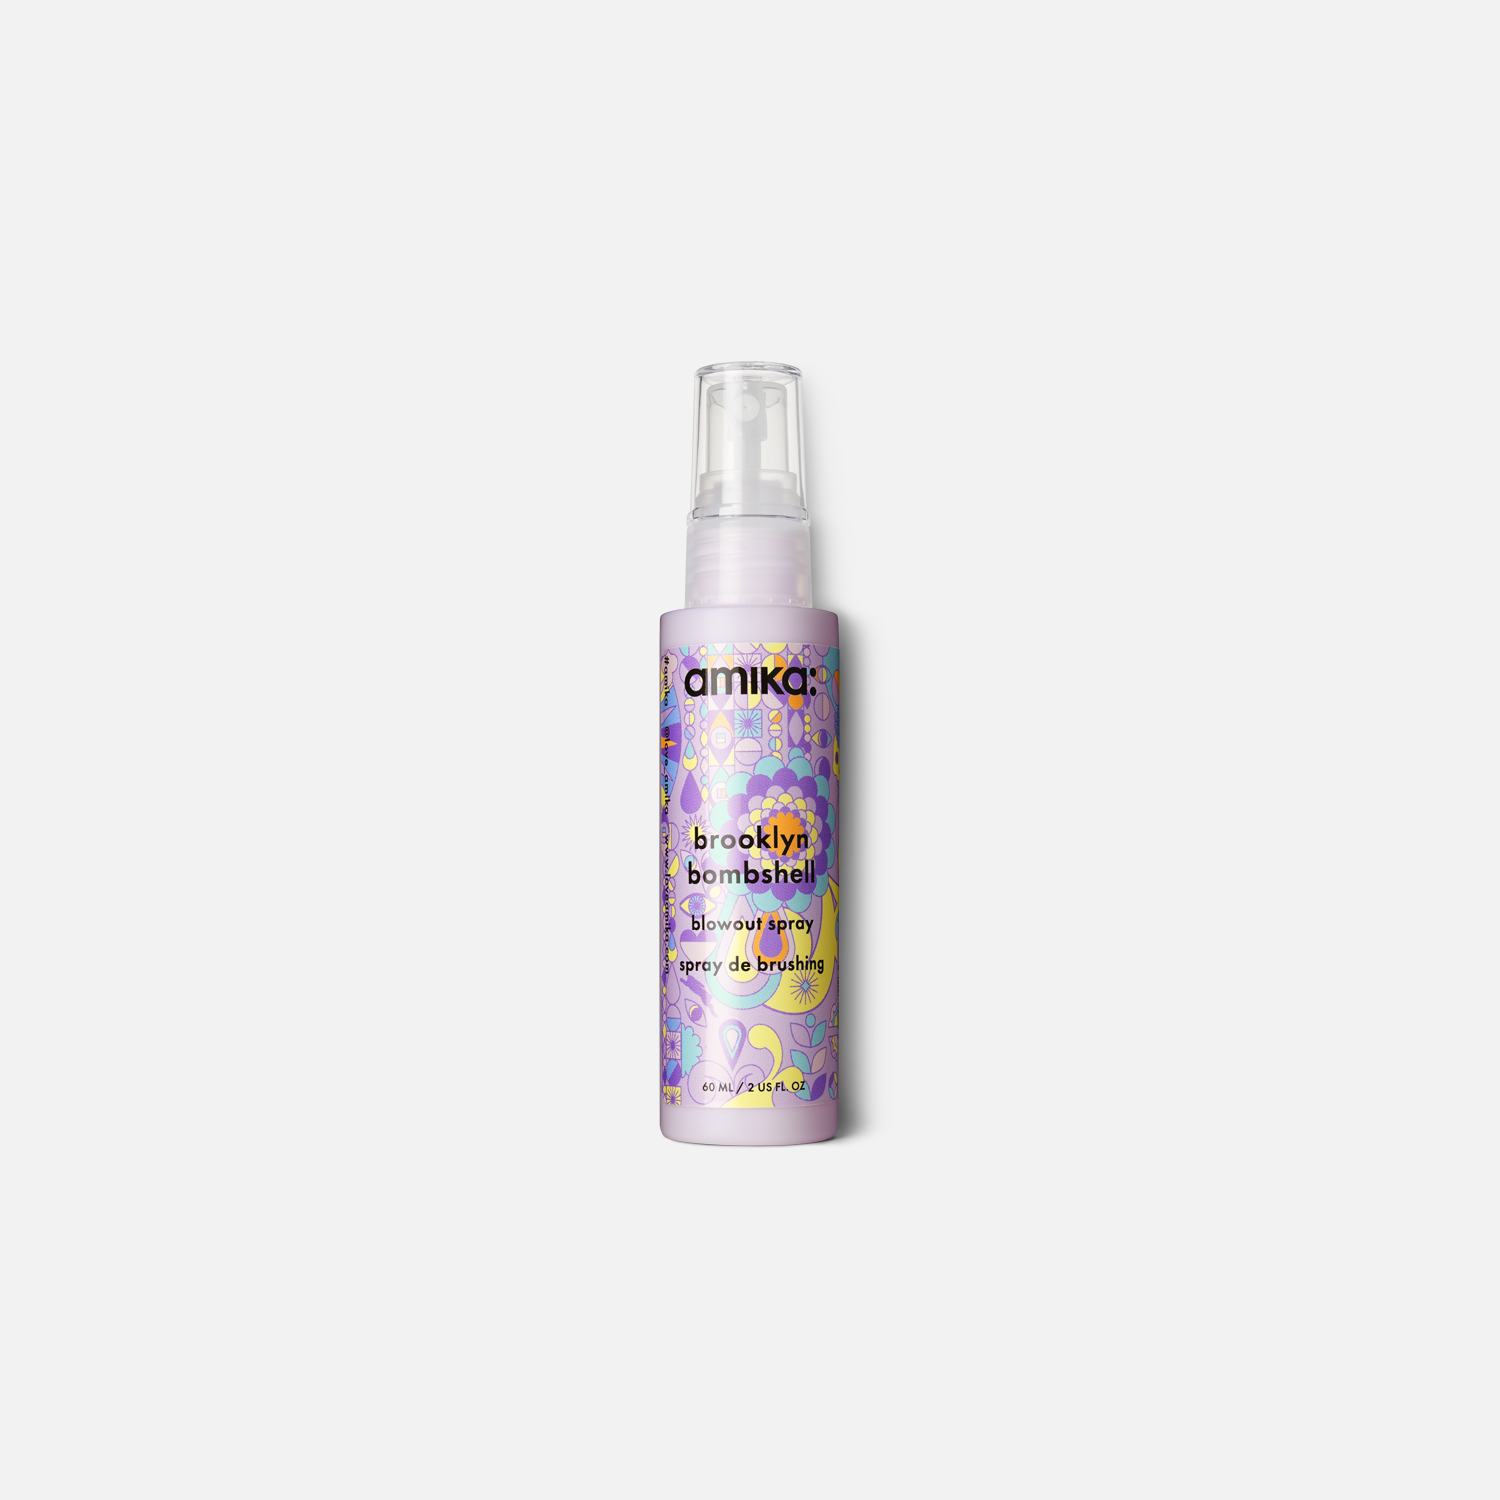 Brooklyn Bombshell Blowout Spray 2 oz | amika